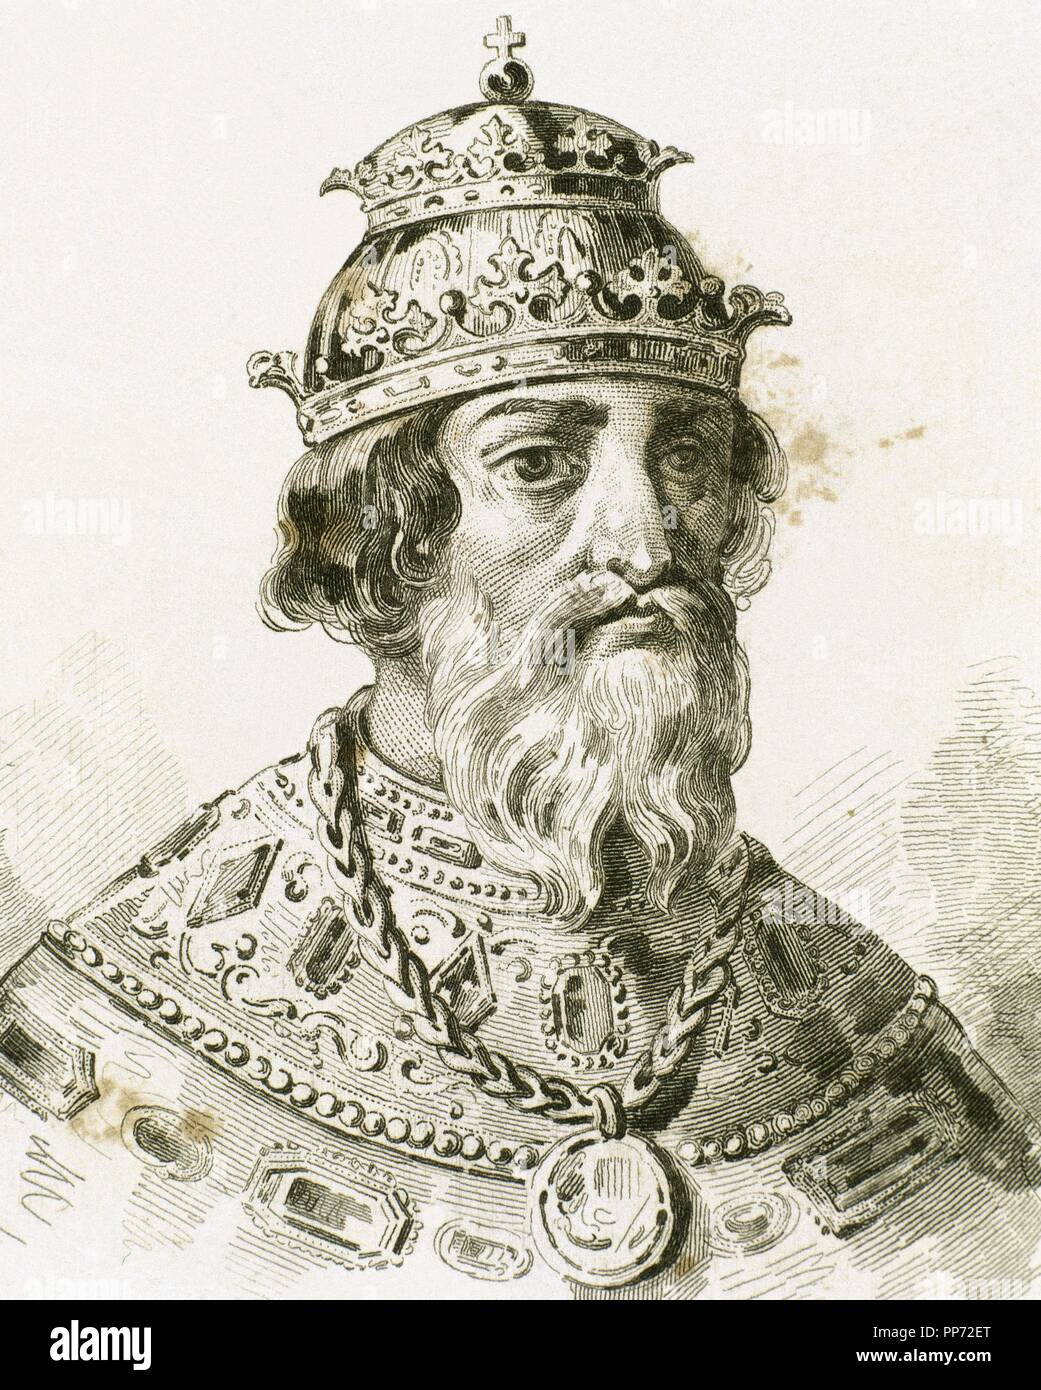 Ivan IV Vasilyevich (1530-1584), known as Ivan the Terrible. Grand Prince of Moscow (1533-1547) and Tsar of All the Russias (1547-1584). Portrait. Engraving. Stock Photo